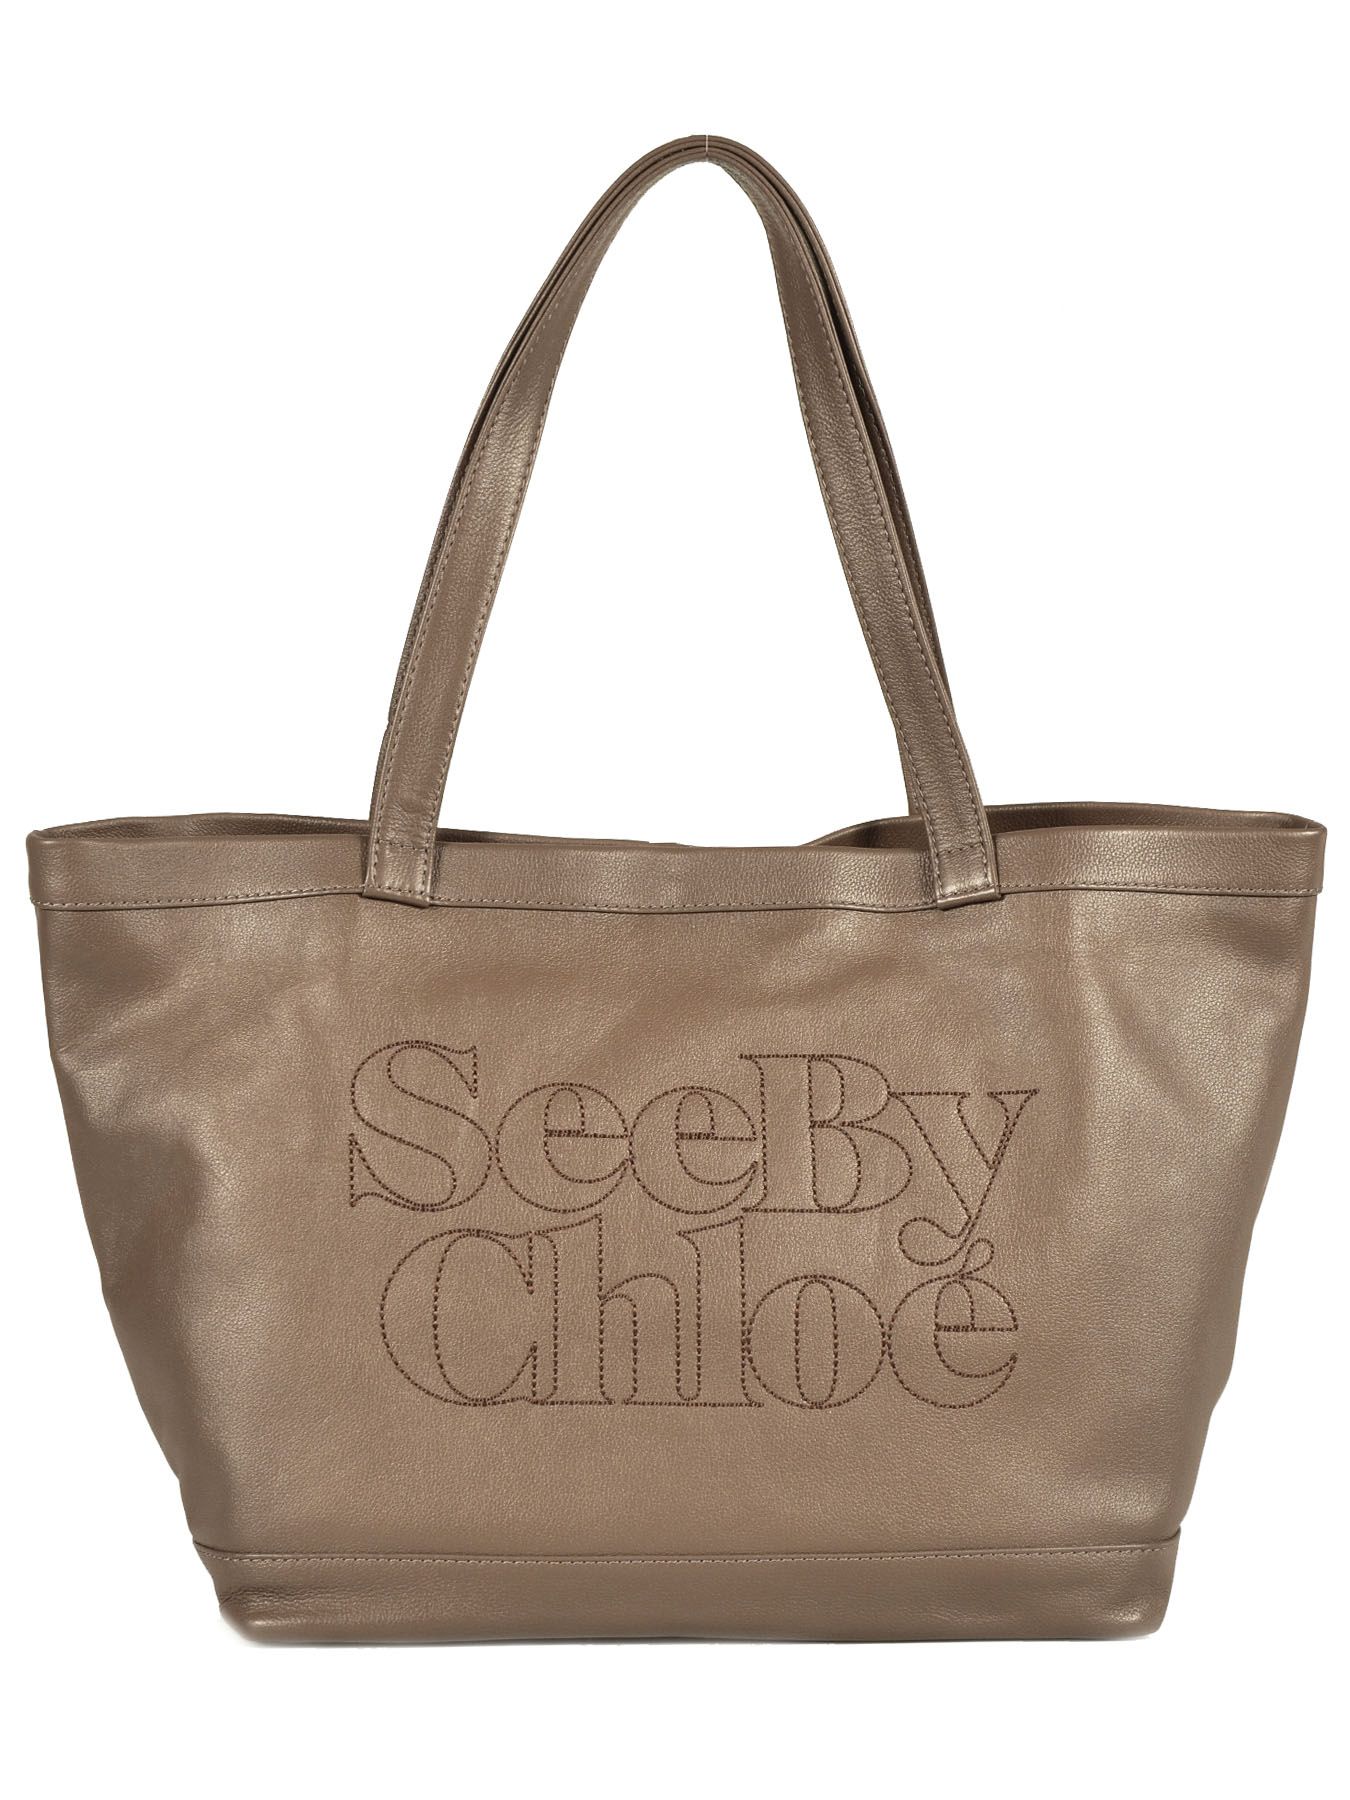 Sac See By Chloe cabas Zip file leather